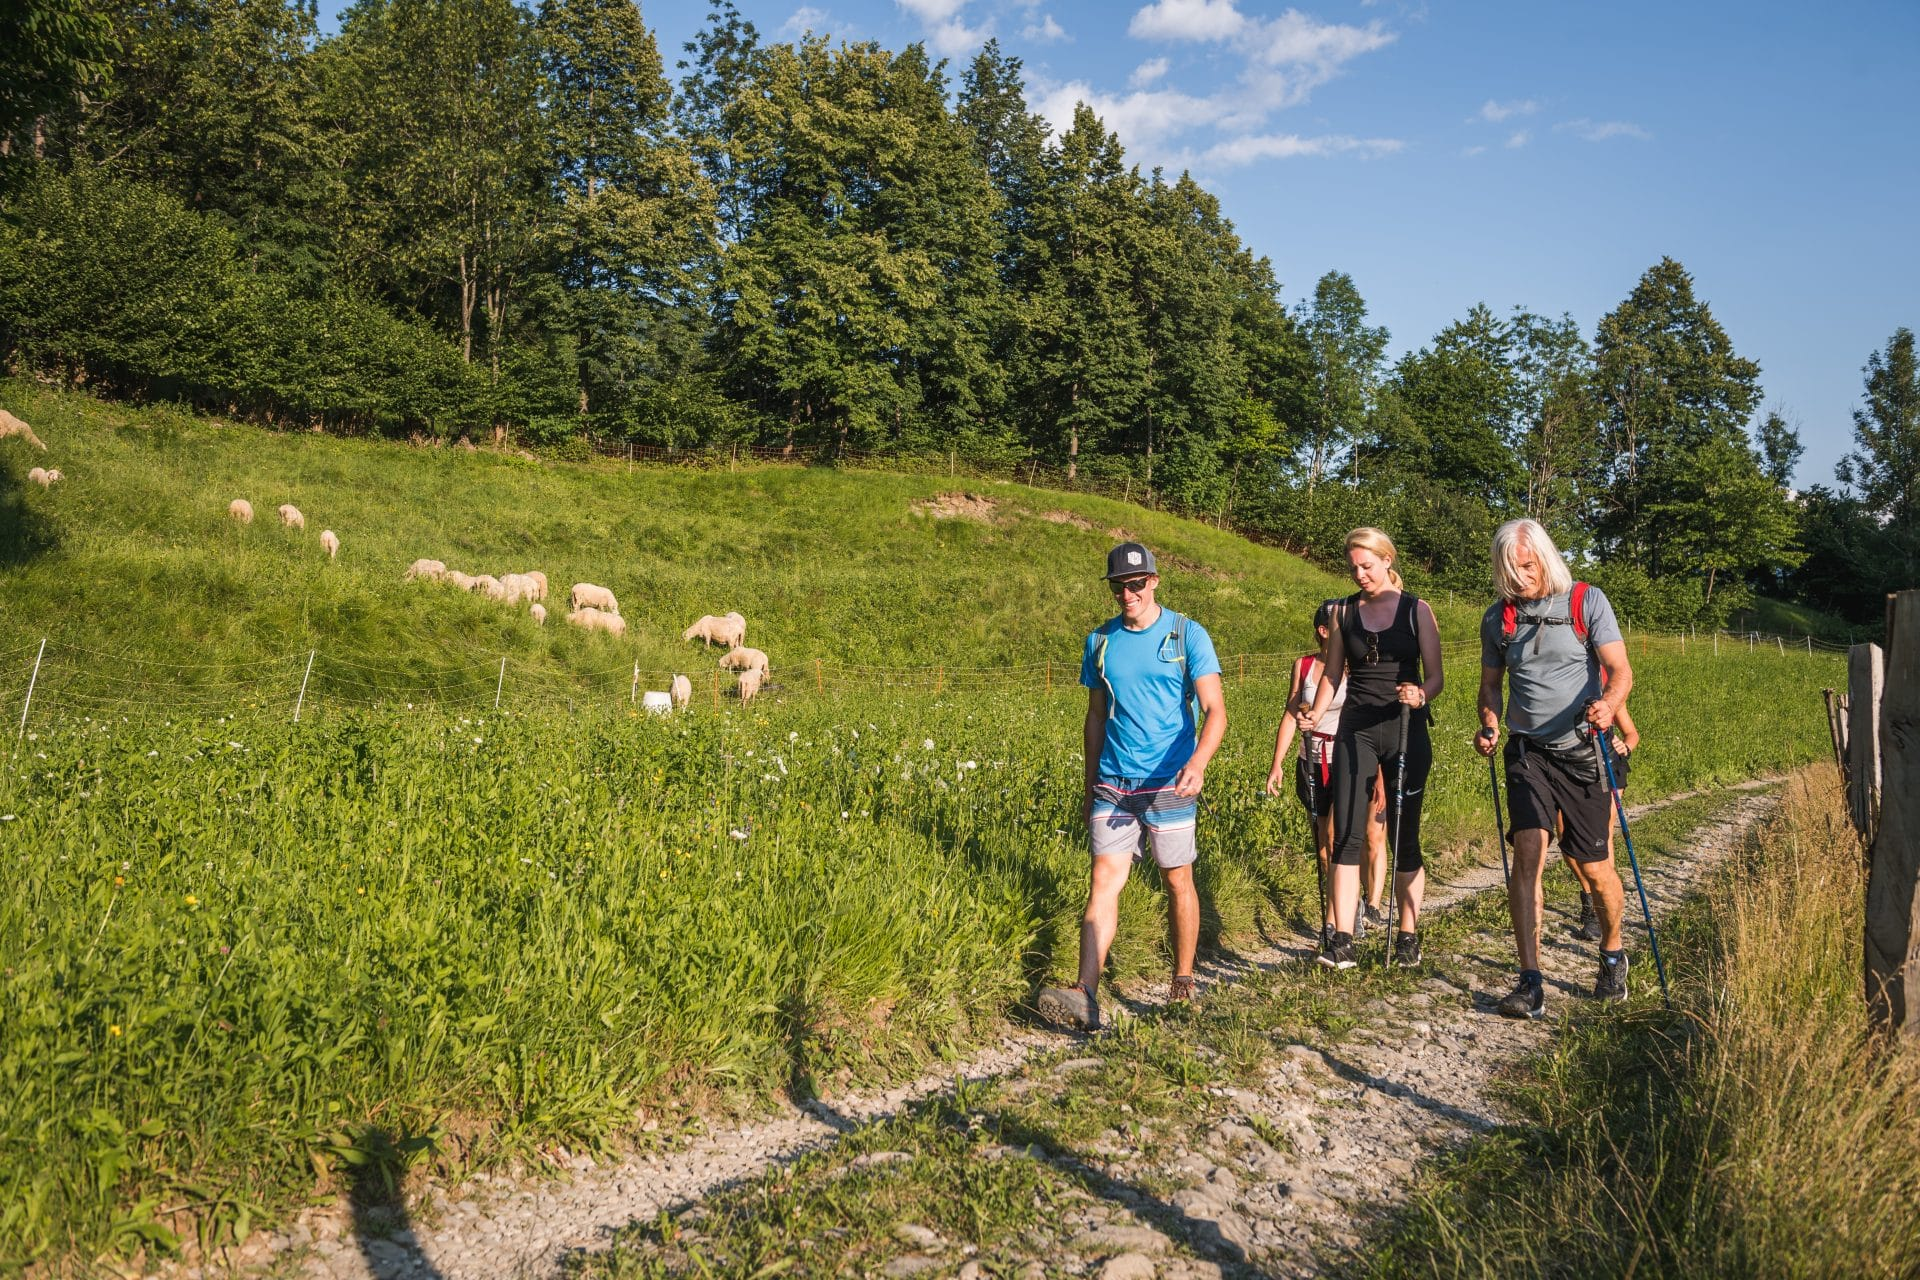 Hikers in Slovenia